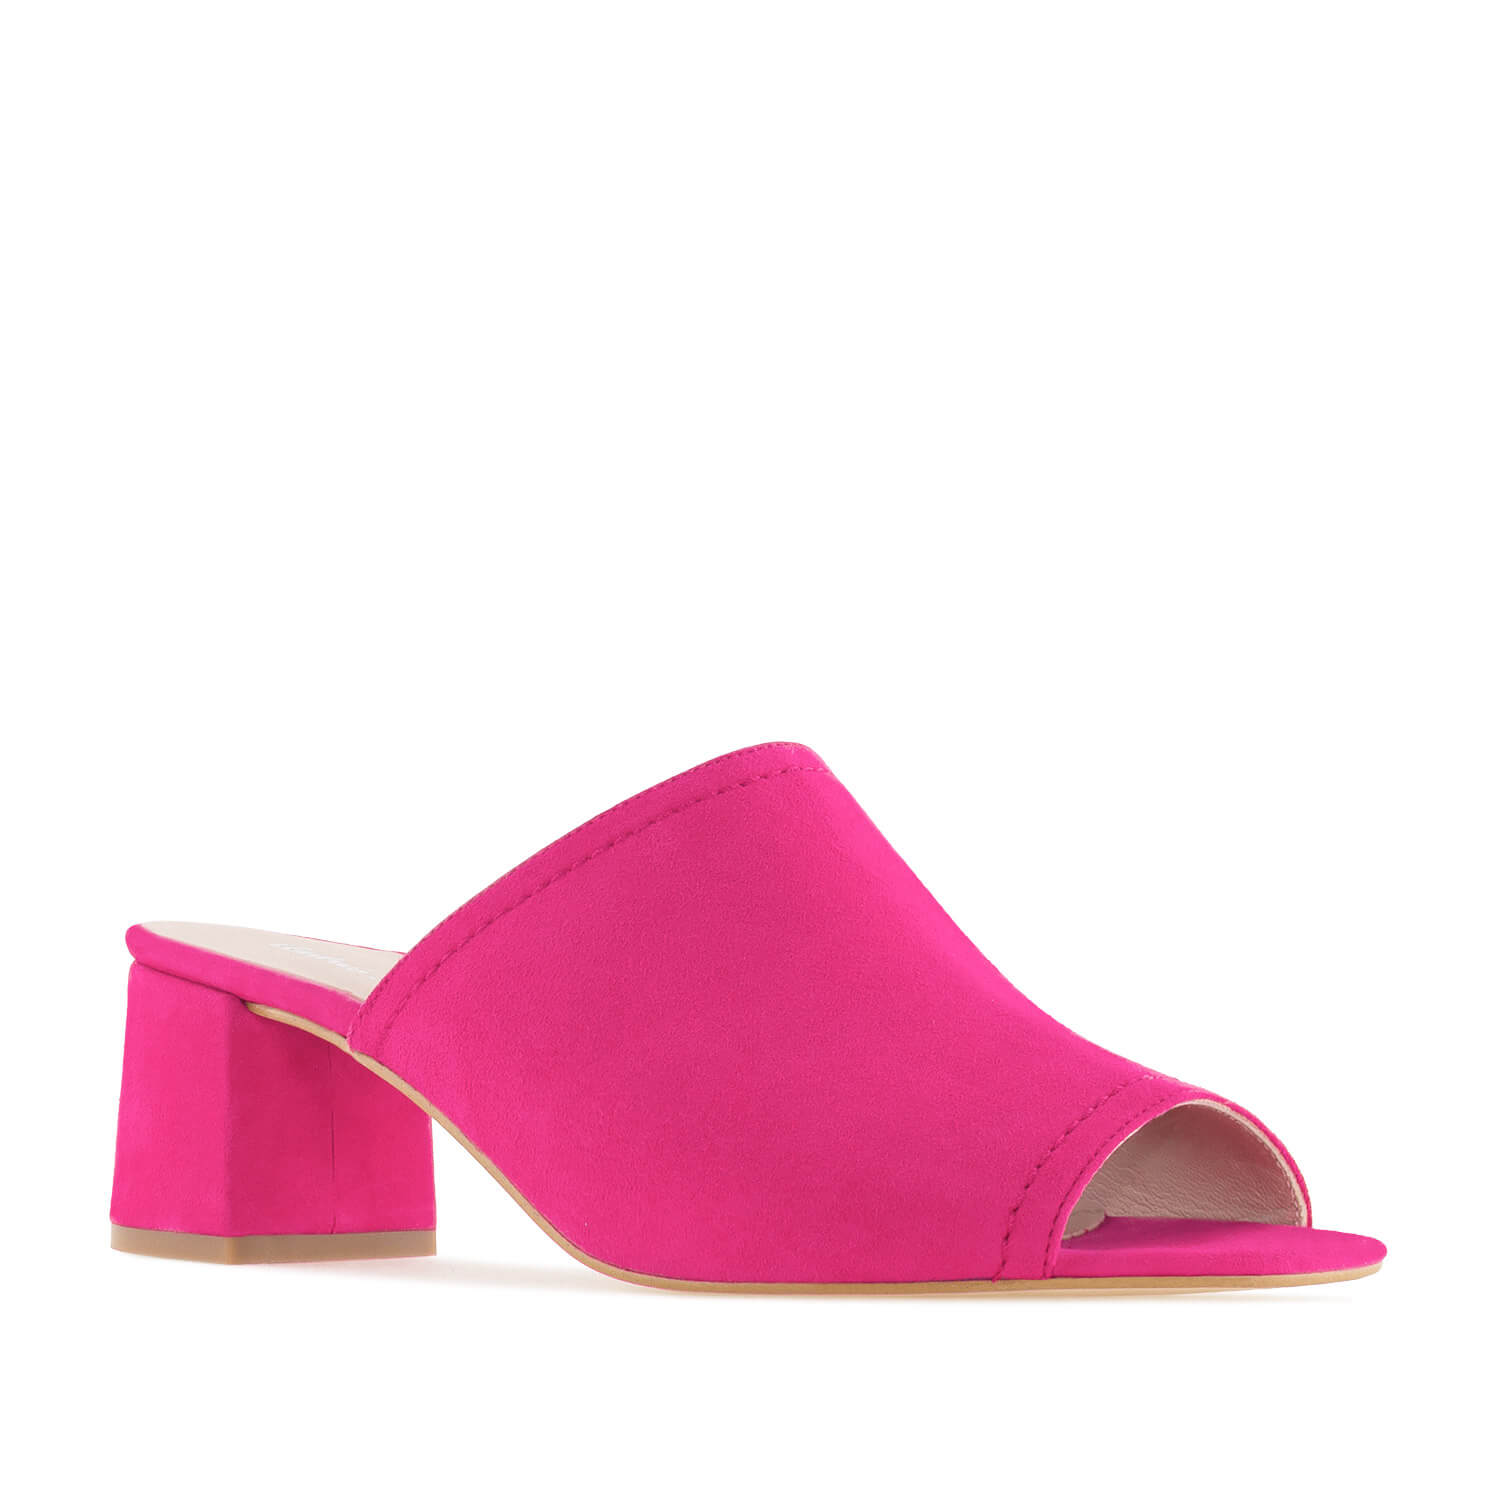 Mules in Fuchsia Suede Leather